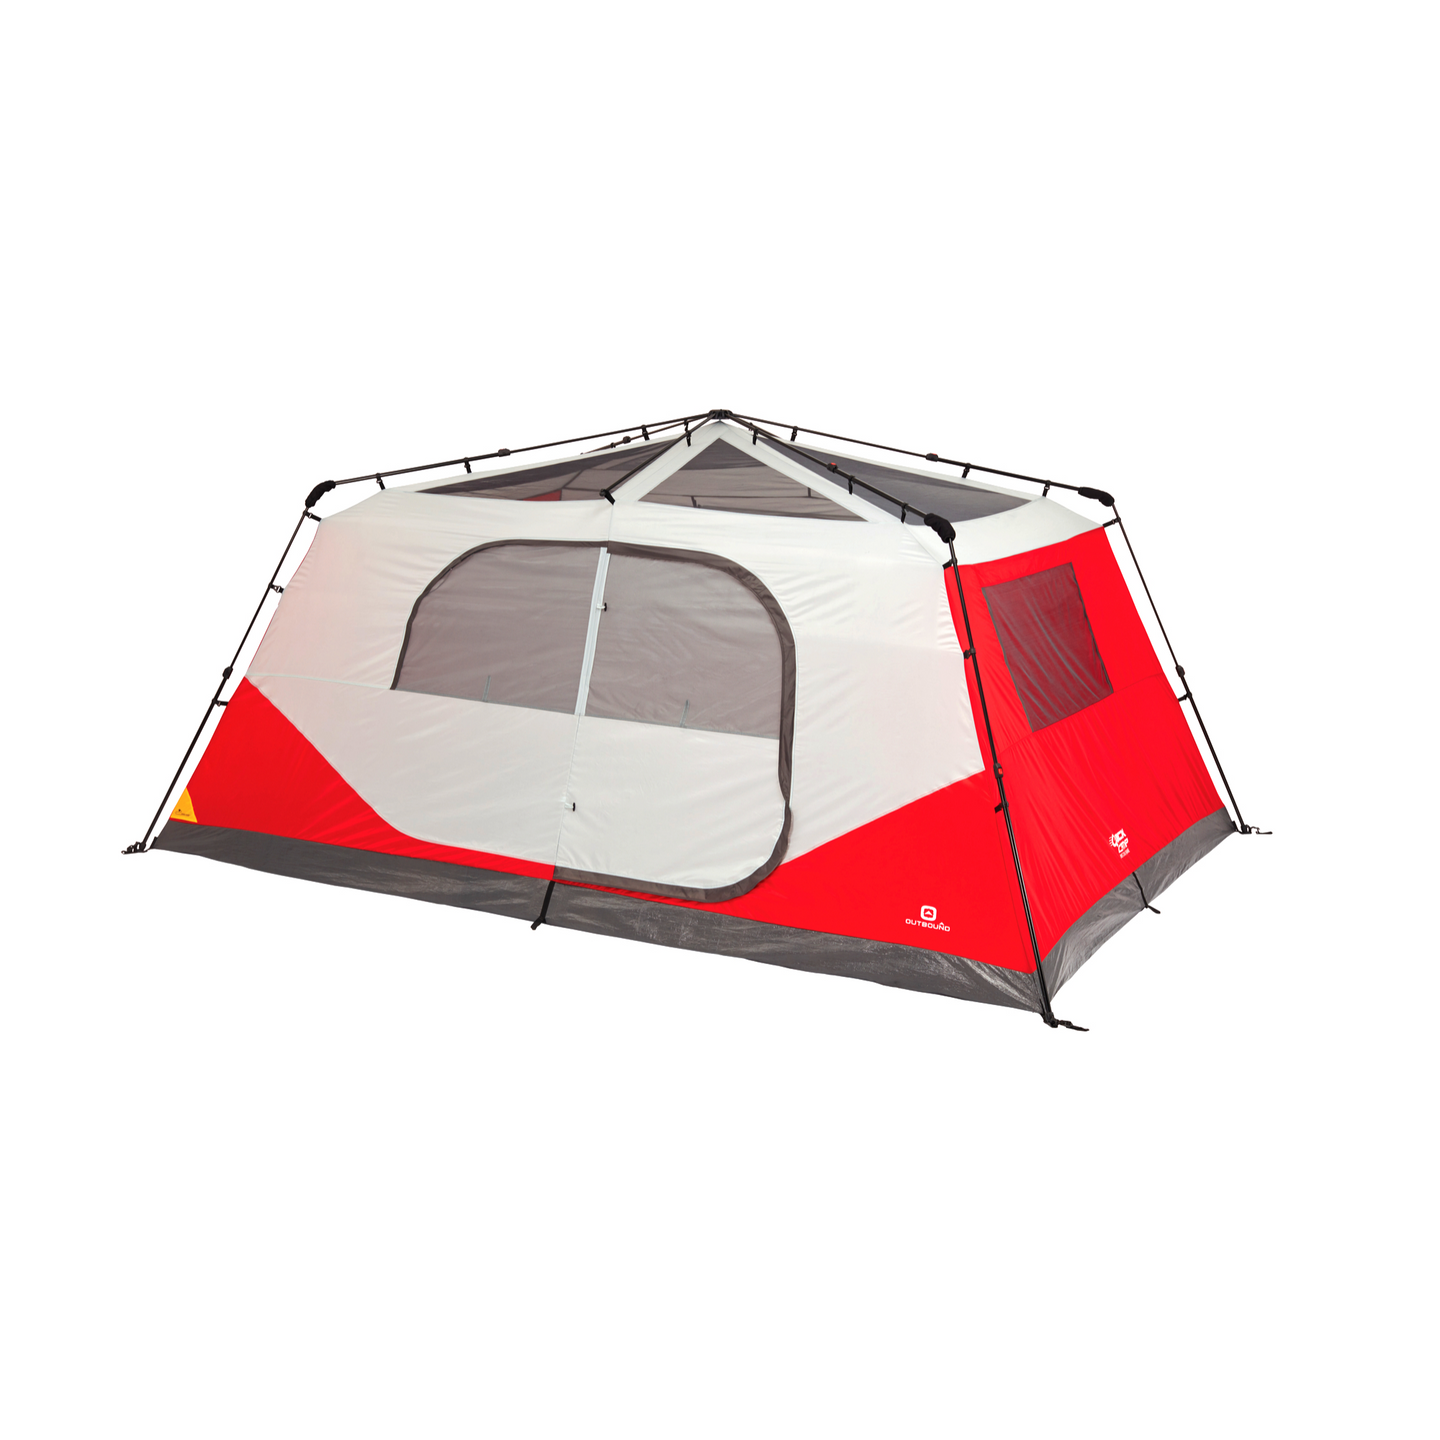 Outbound 10-Person 3-Season Instant Pop-Up Cabin Tent with Carry Bag and Rainfly - Red